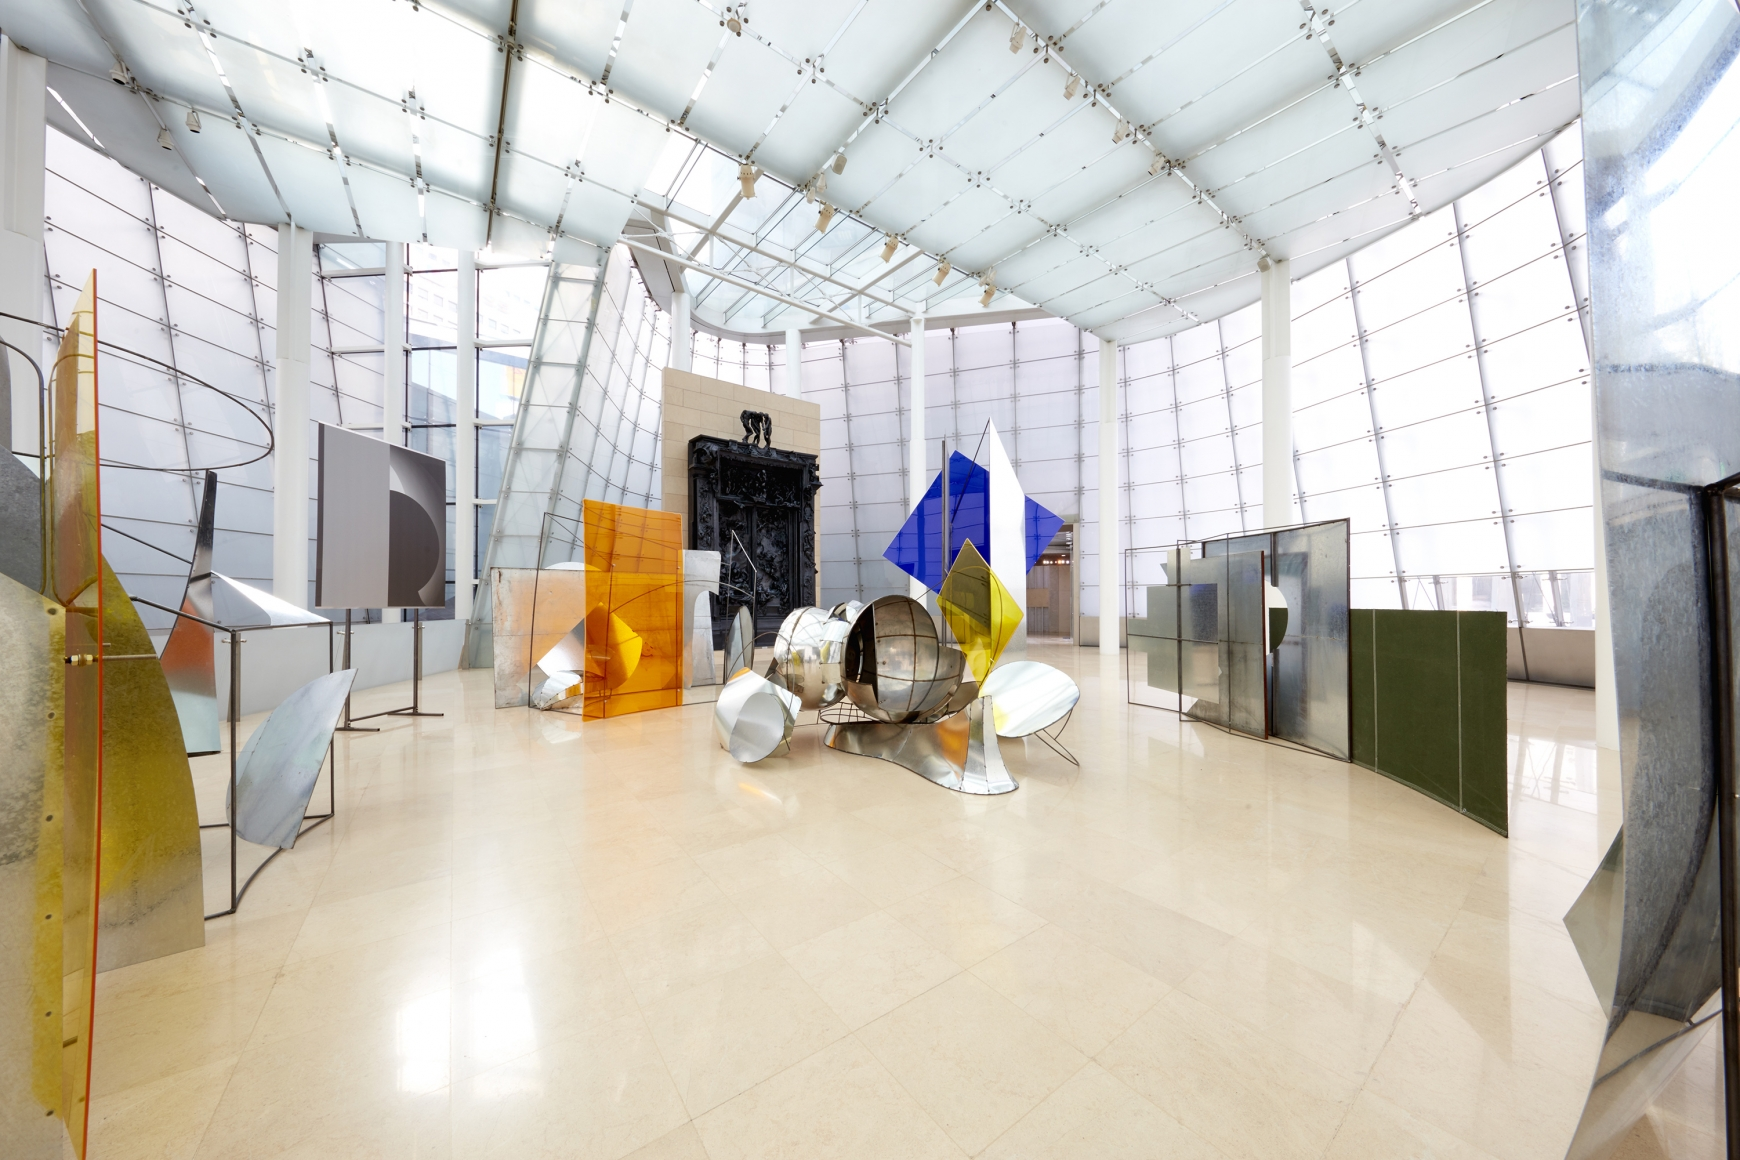 Liu Wei, Panorama, Installation view